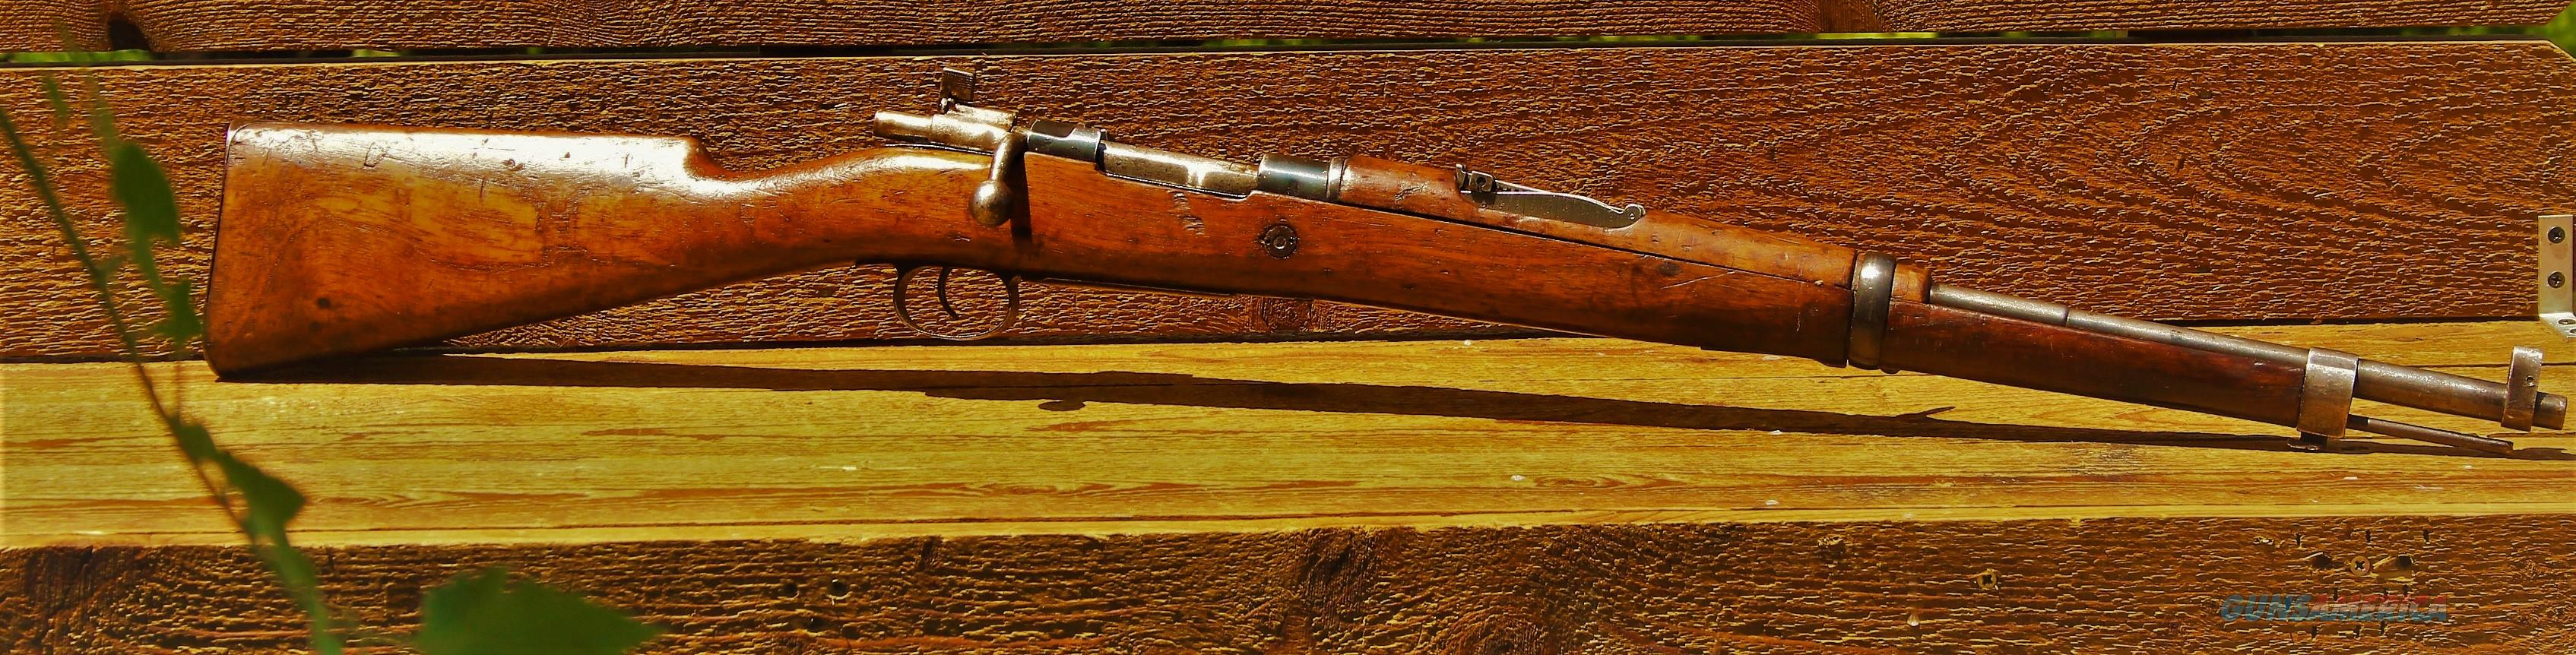 NA MAUSER EASY PAY $20 DOWN LAYAWAY Navy Arms SAMCO 1916 SPANISH 1916 MAUSER WALNUT WOOD STOCK .308 WINCHESTER Serial number of firearm OT-1757 RI-25-02  Guns > Rifles > Navy Arms Rifles